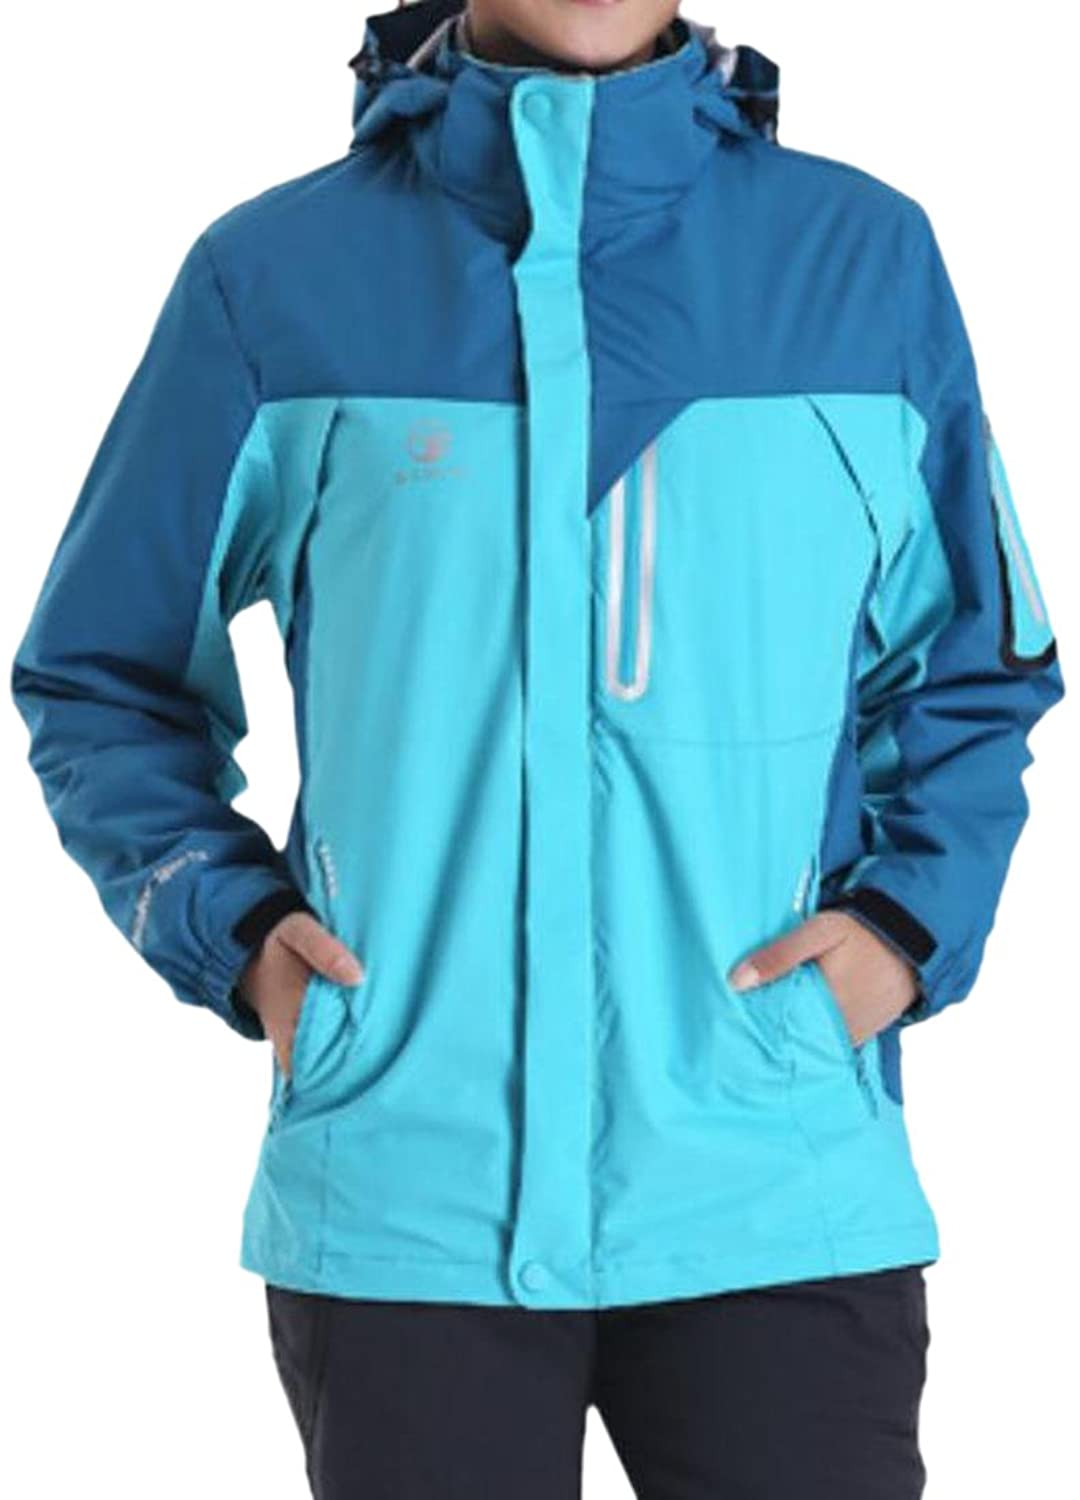 Honey GD Women's Simple Windproof Hooded Jacket Mountain Jacket